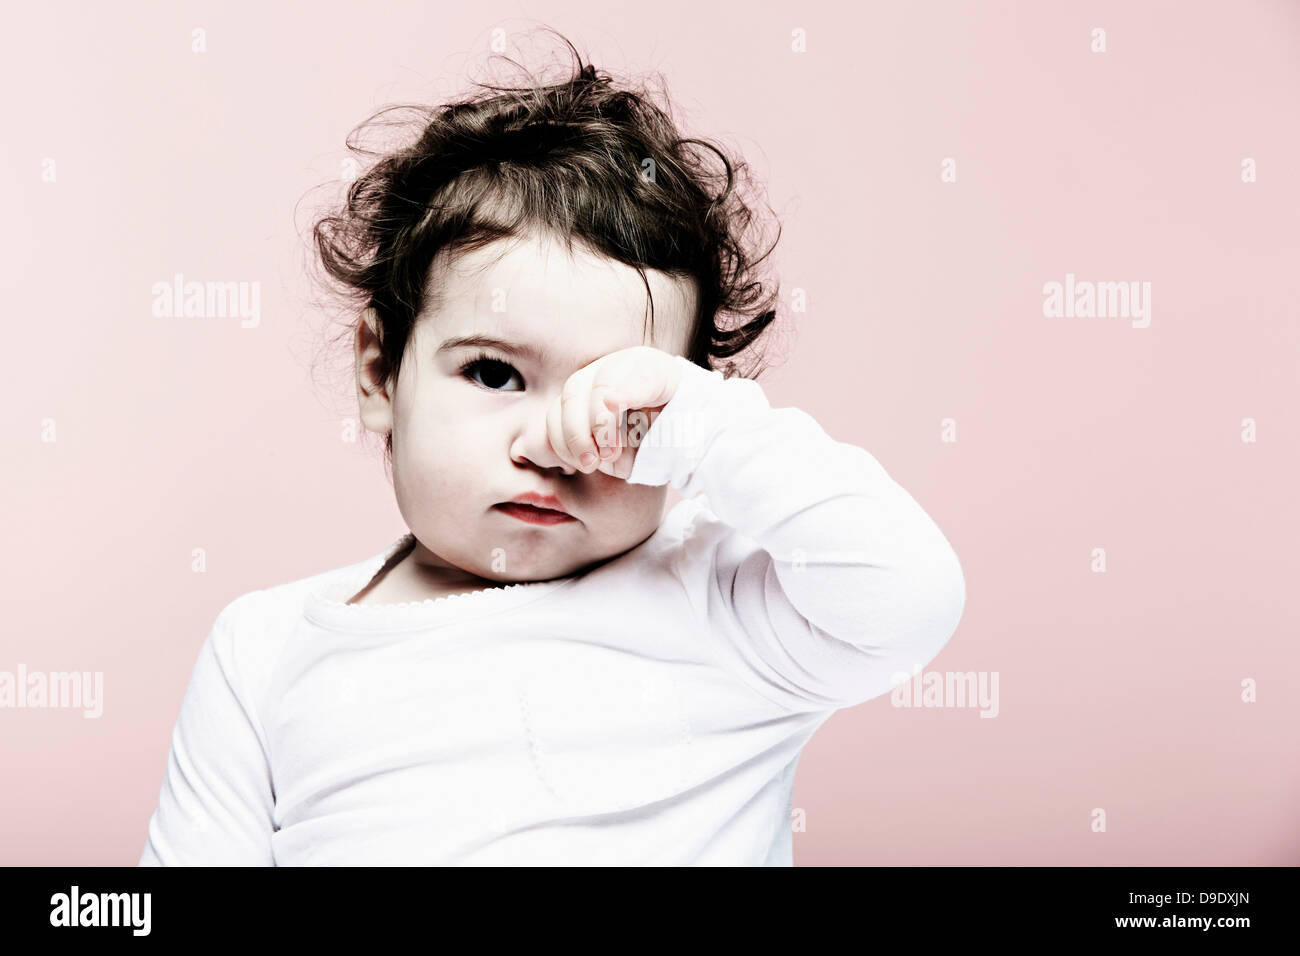 Portrait of baby girl rubbing eyes - Stock Image